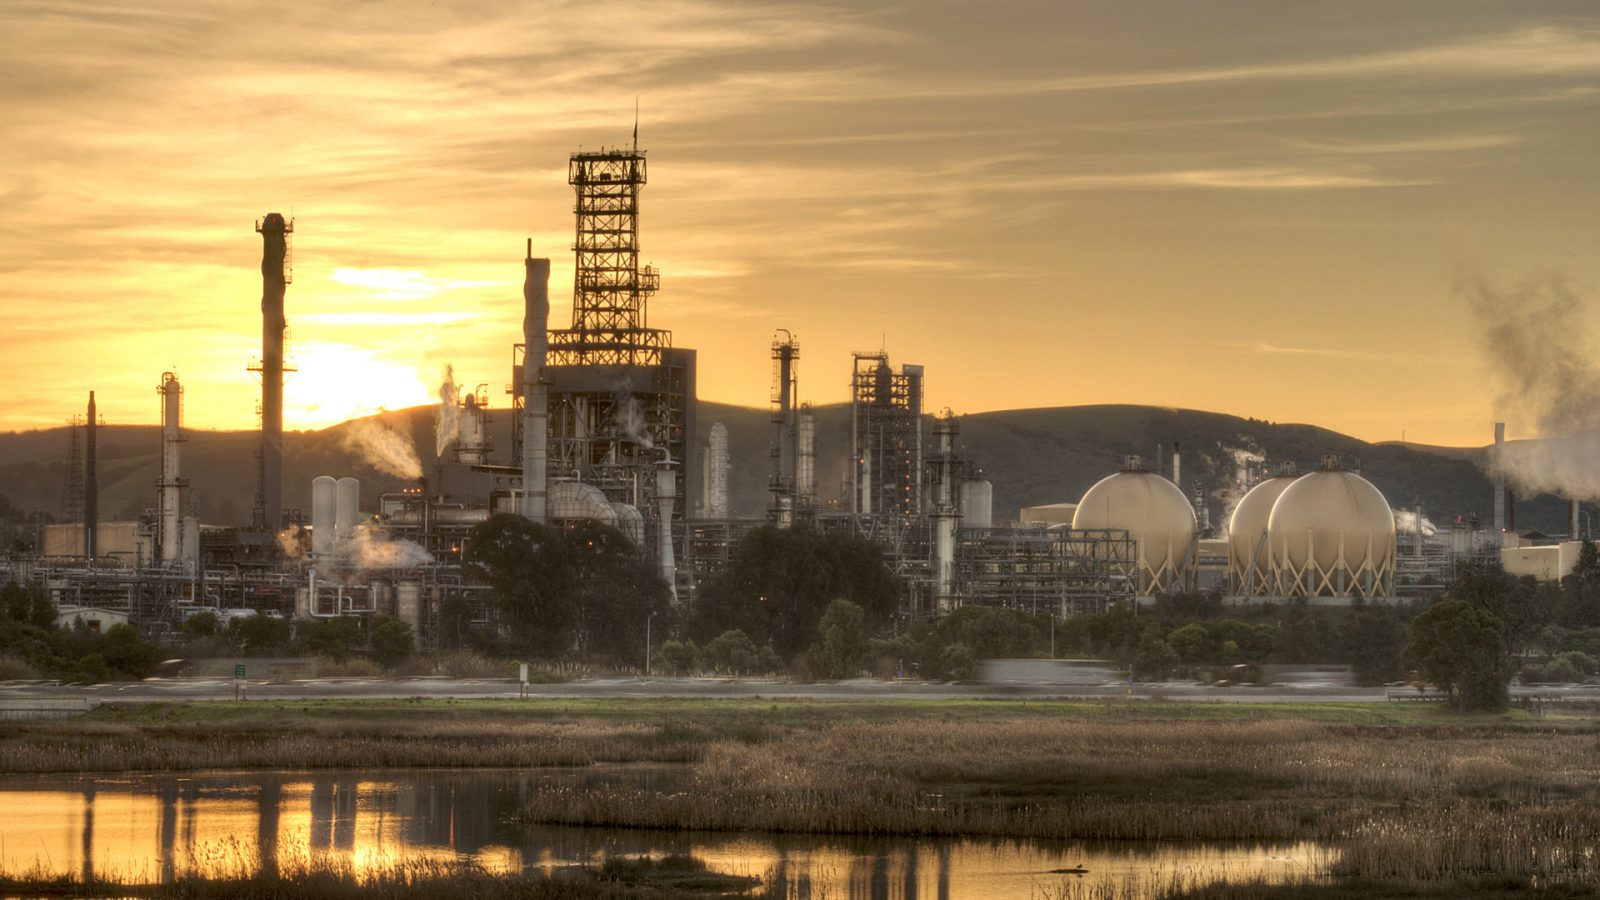 Shell California Refinery